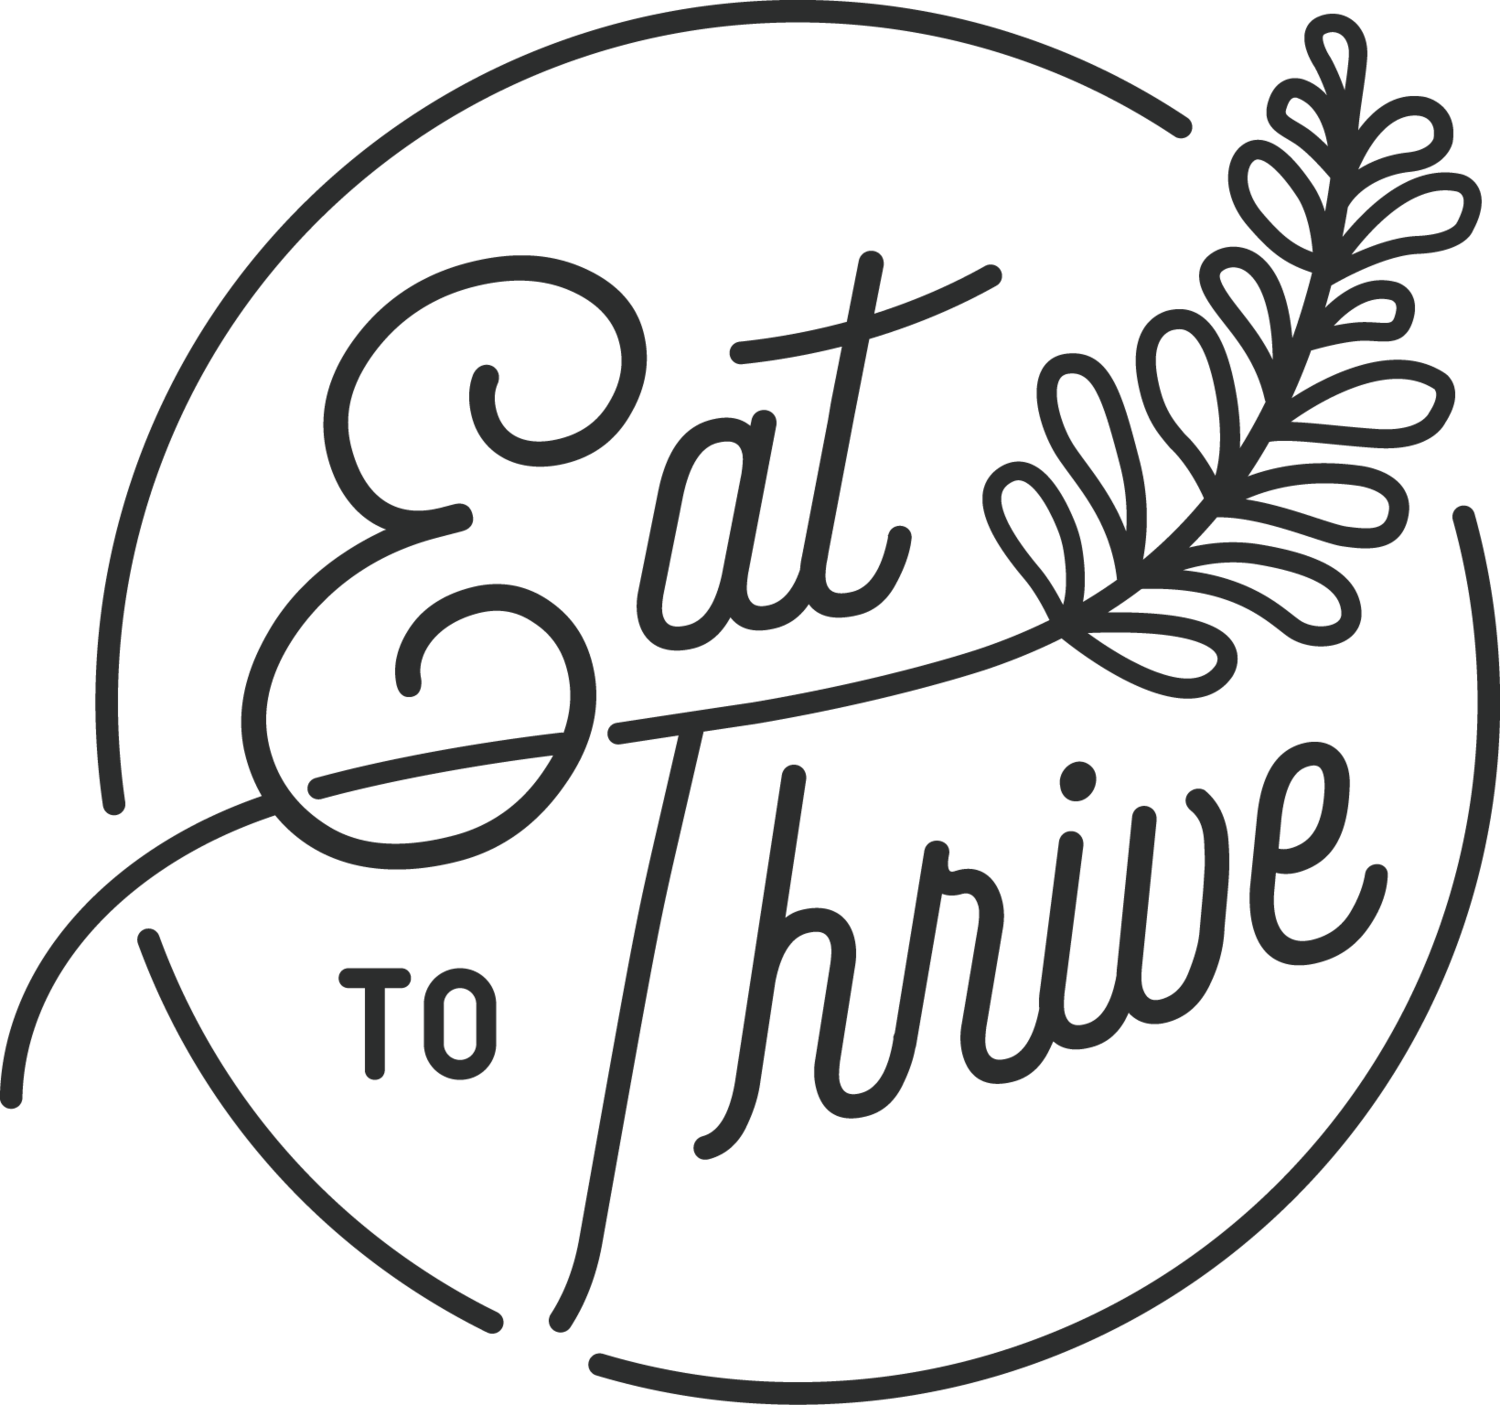 Eat To Thrive